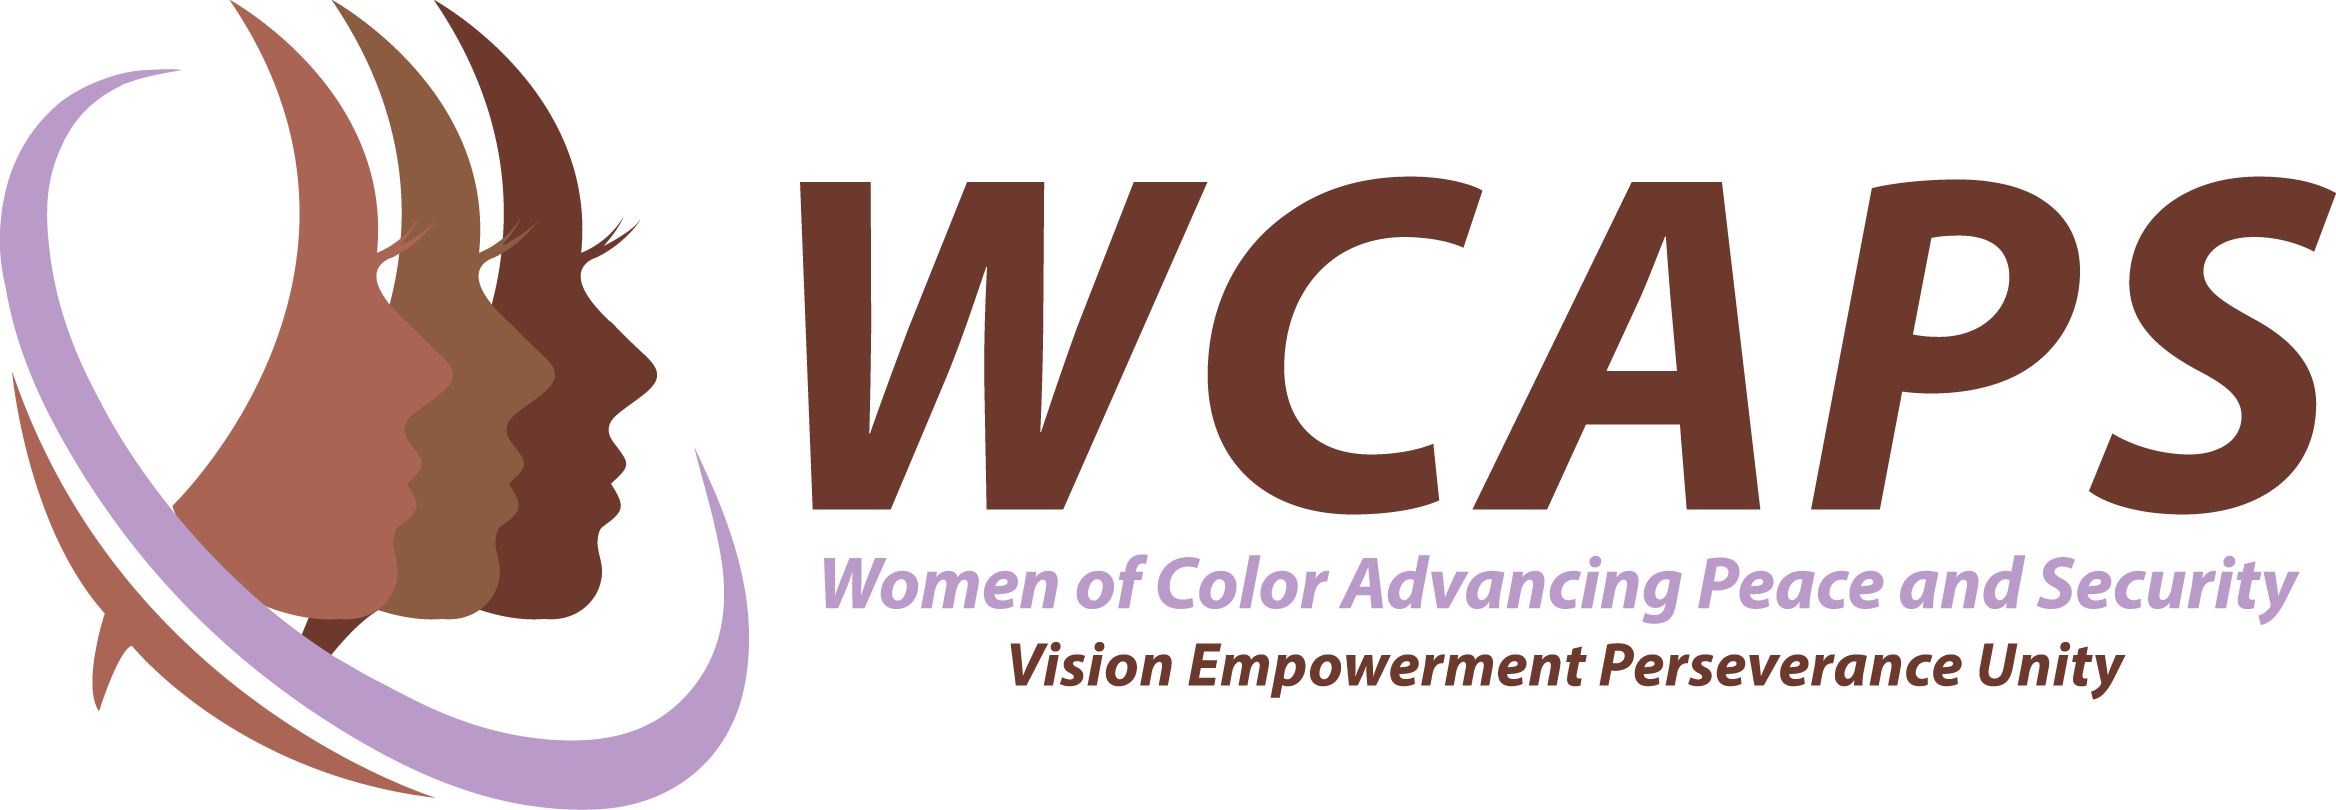 Women of Color Advancing Peace and Security logo